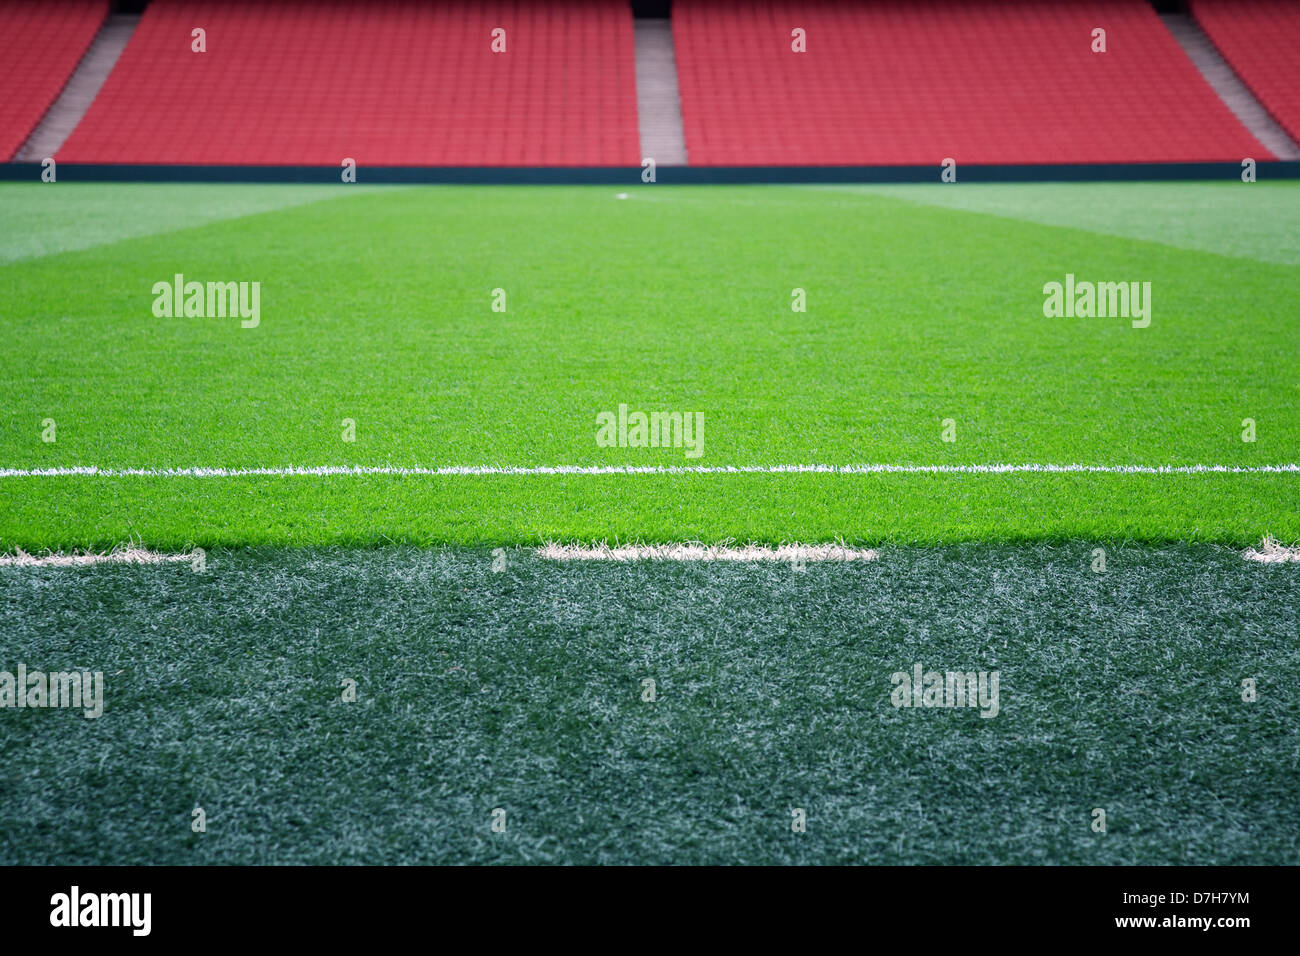 Empty football pitch with red seating, selective focus on touchline. - Stock Image